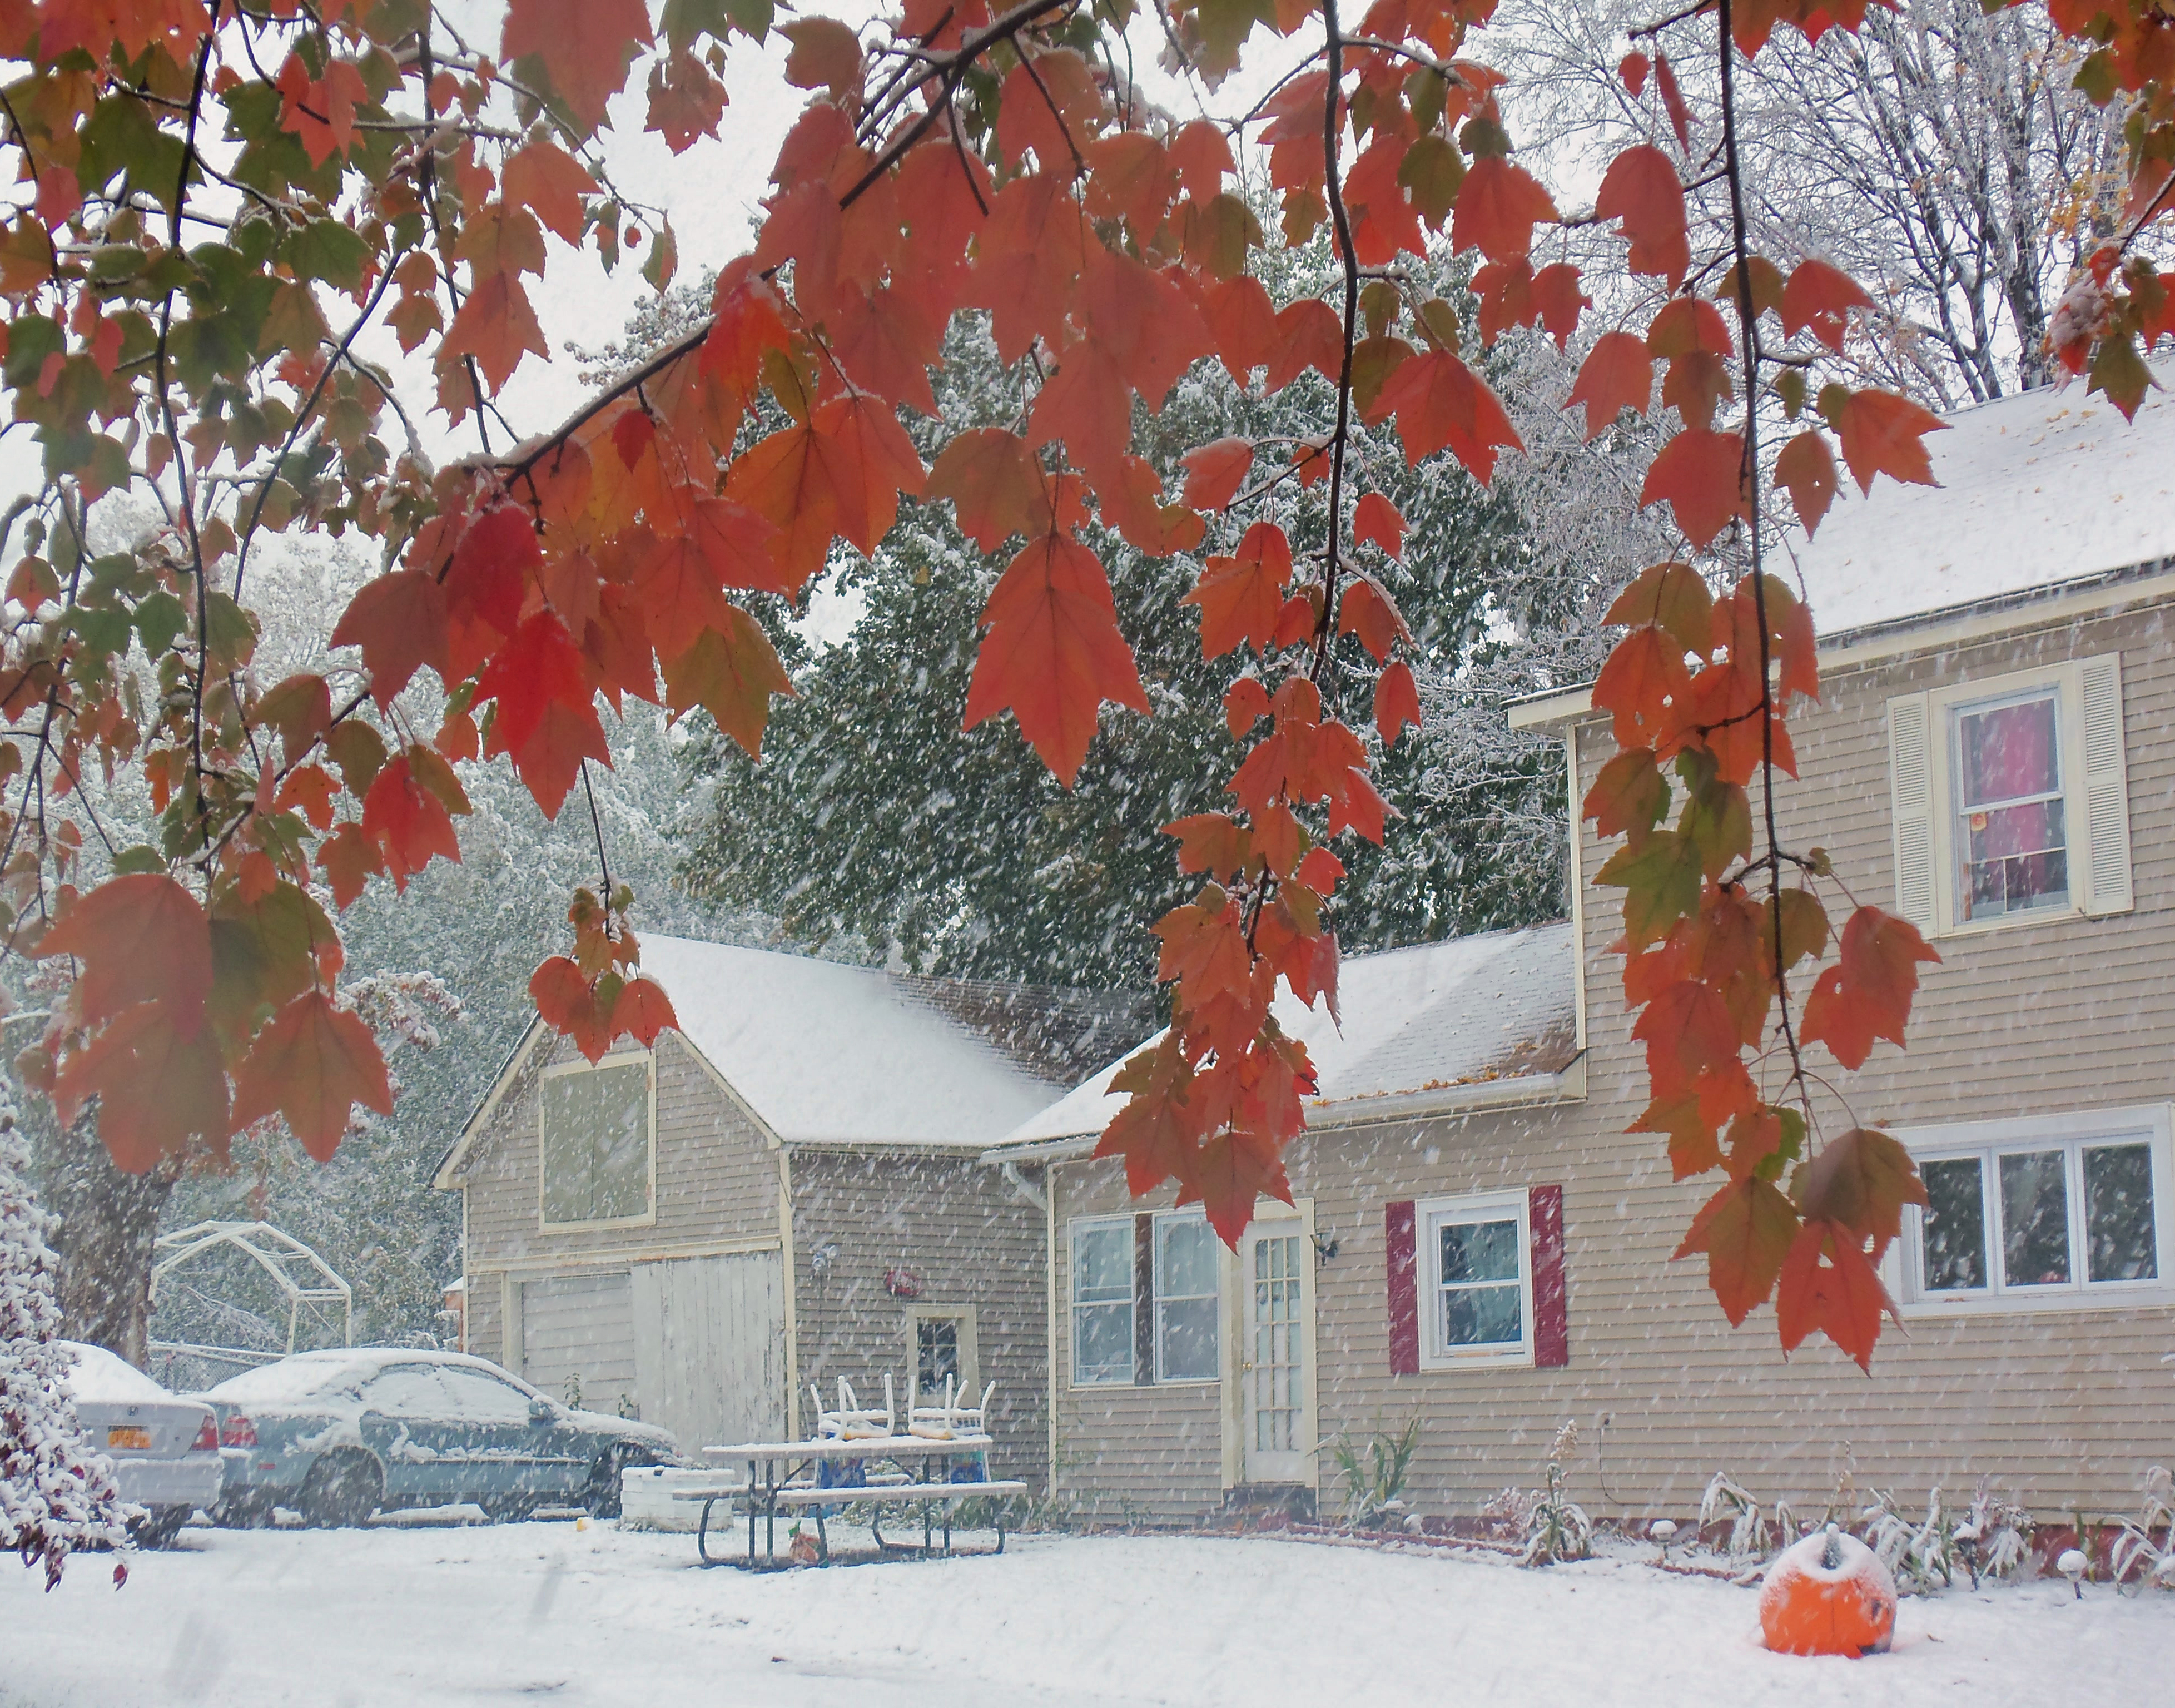 snow falling into the backyard of a light brown house and garage in the upper